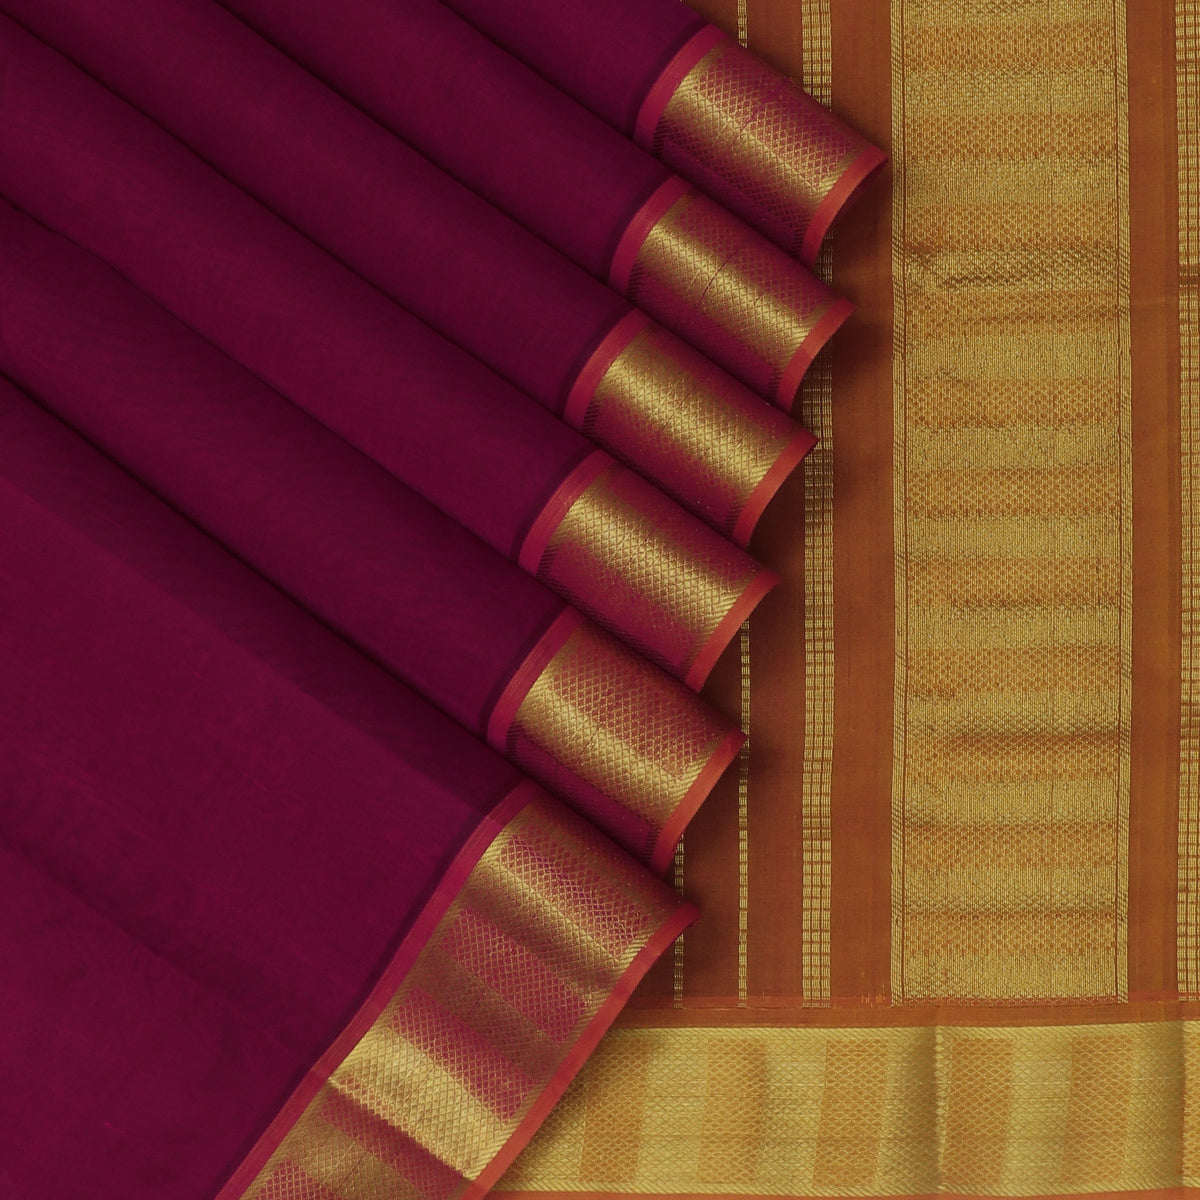 Silk Cotton Saree Magenta and Honey color with zari border 9 yards